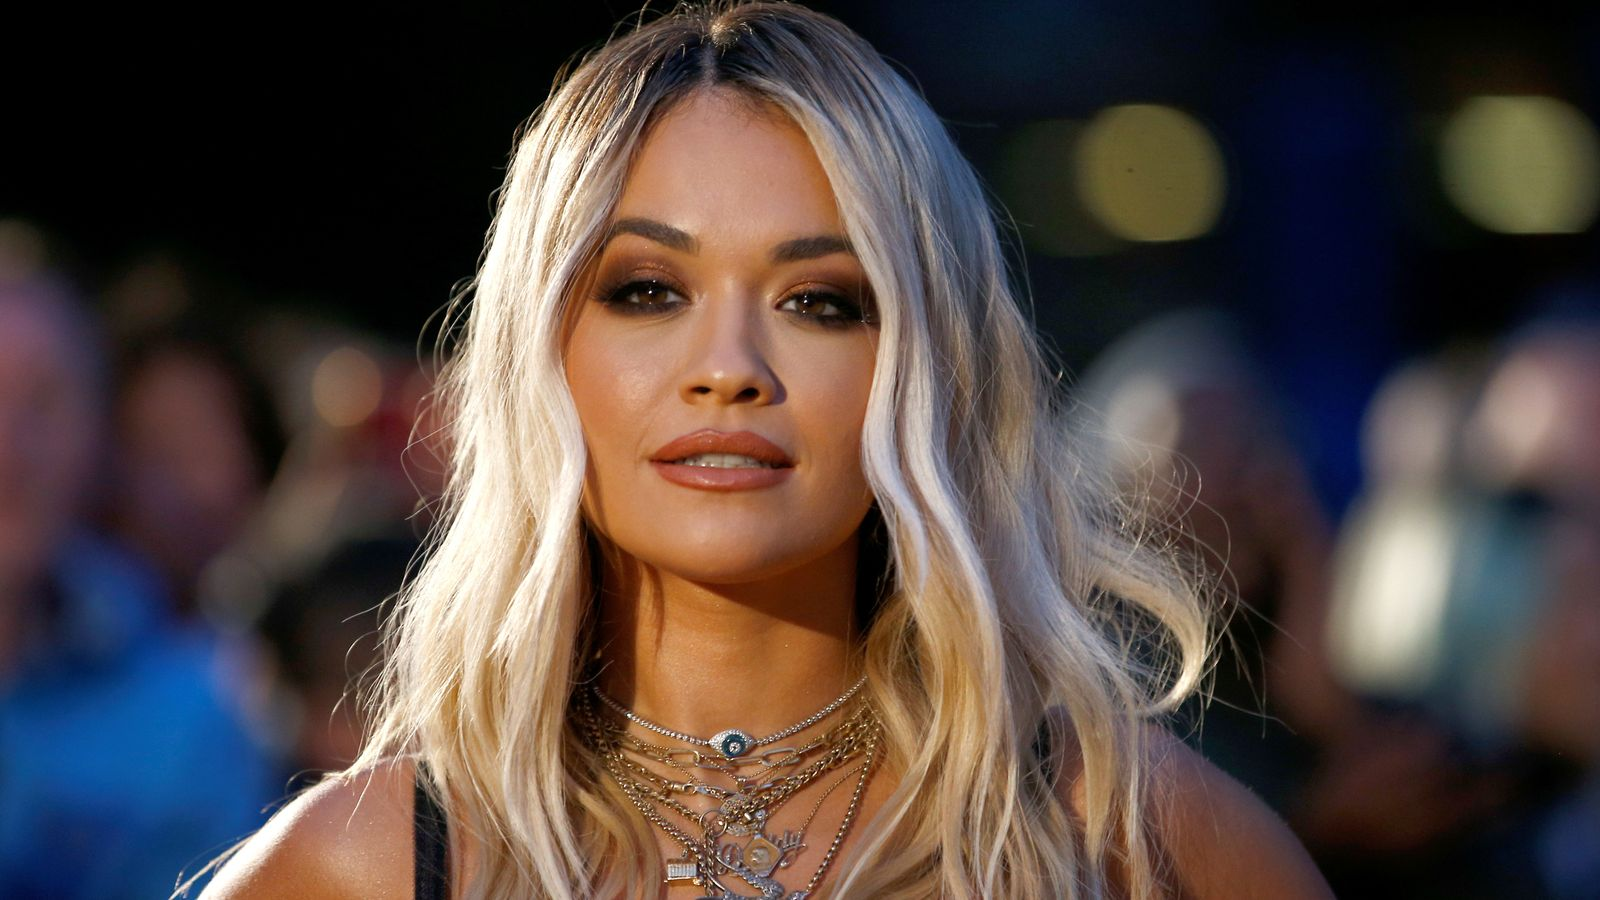 Rita Ora Faces Another Backlash After Travelling To Australia For The Voice Ents Arts News Sky News